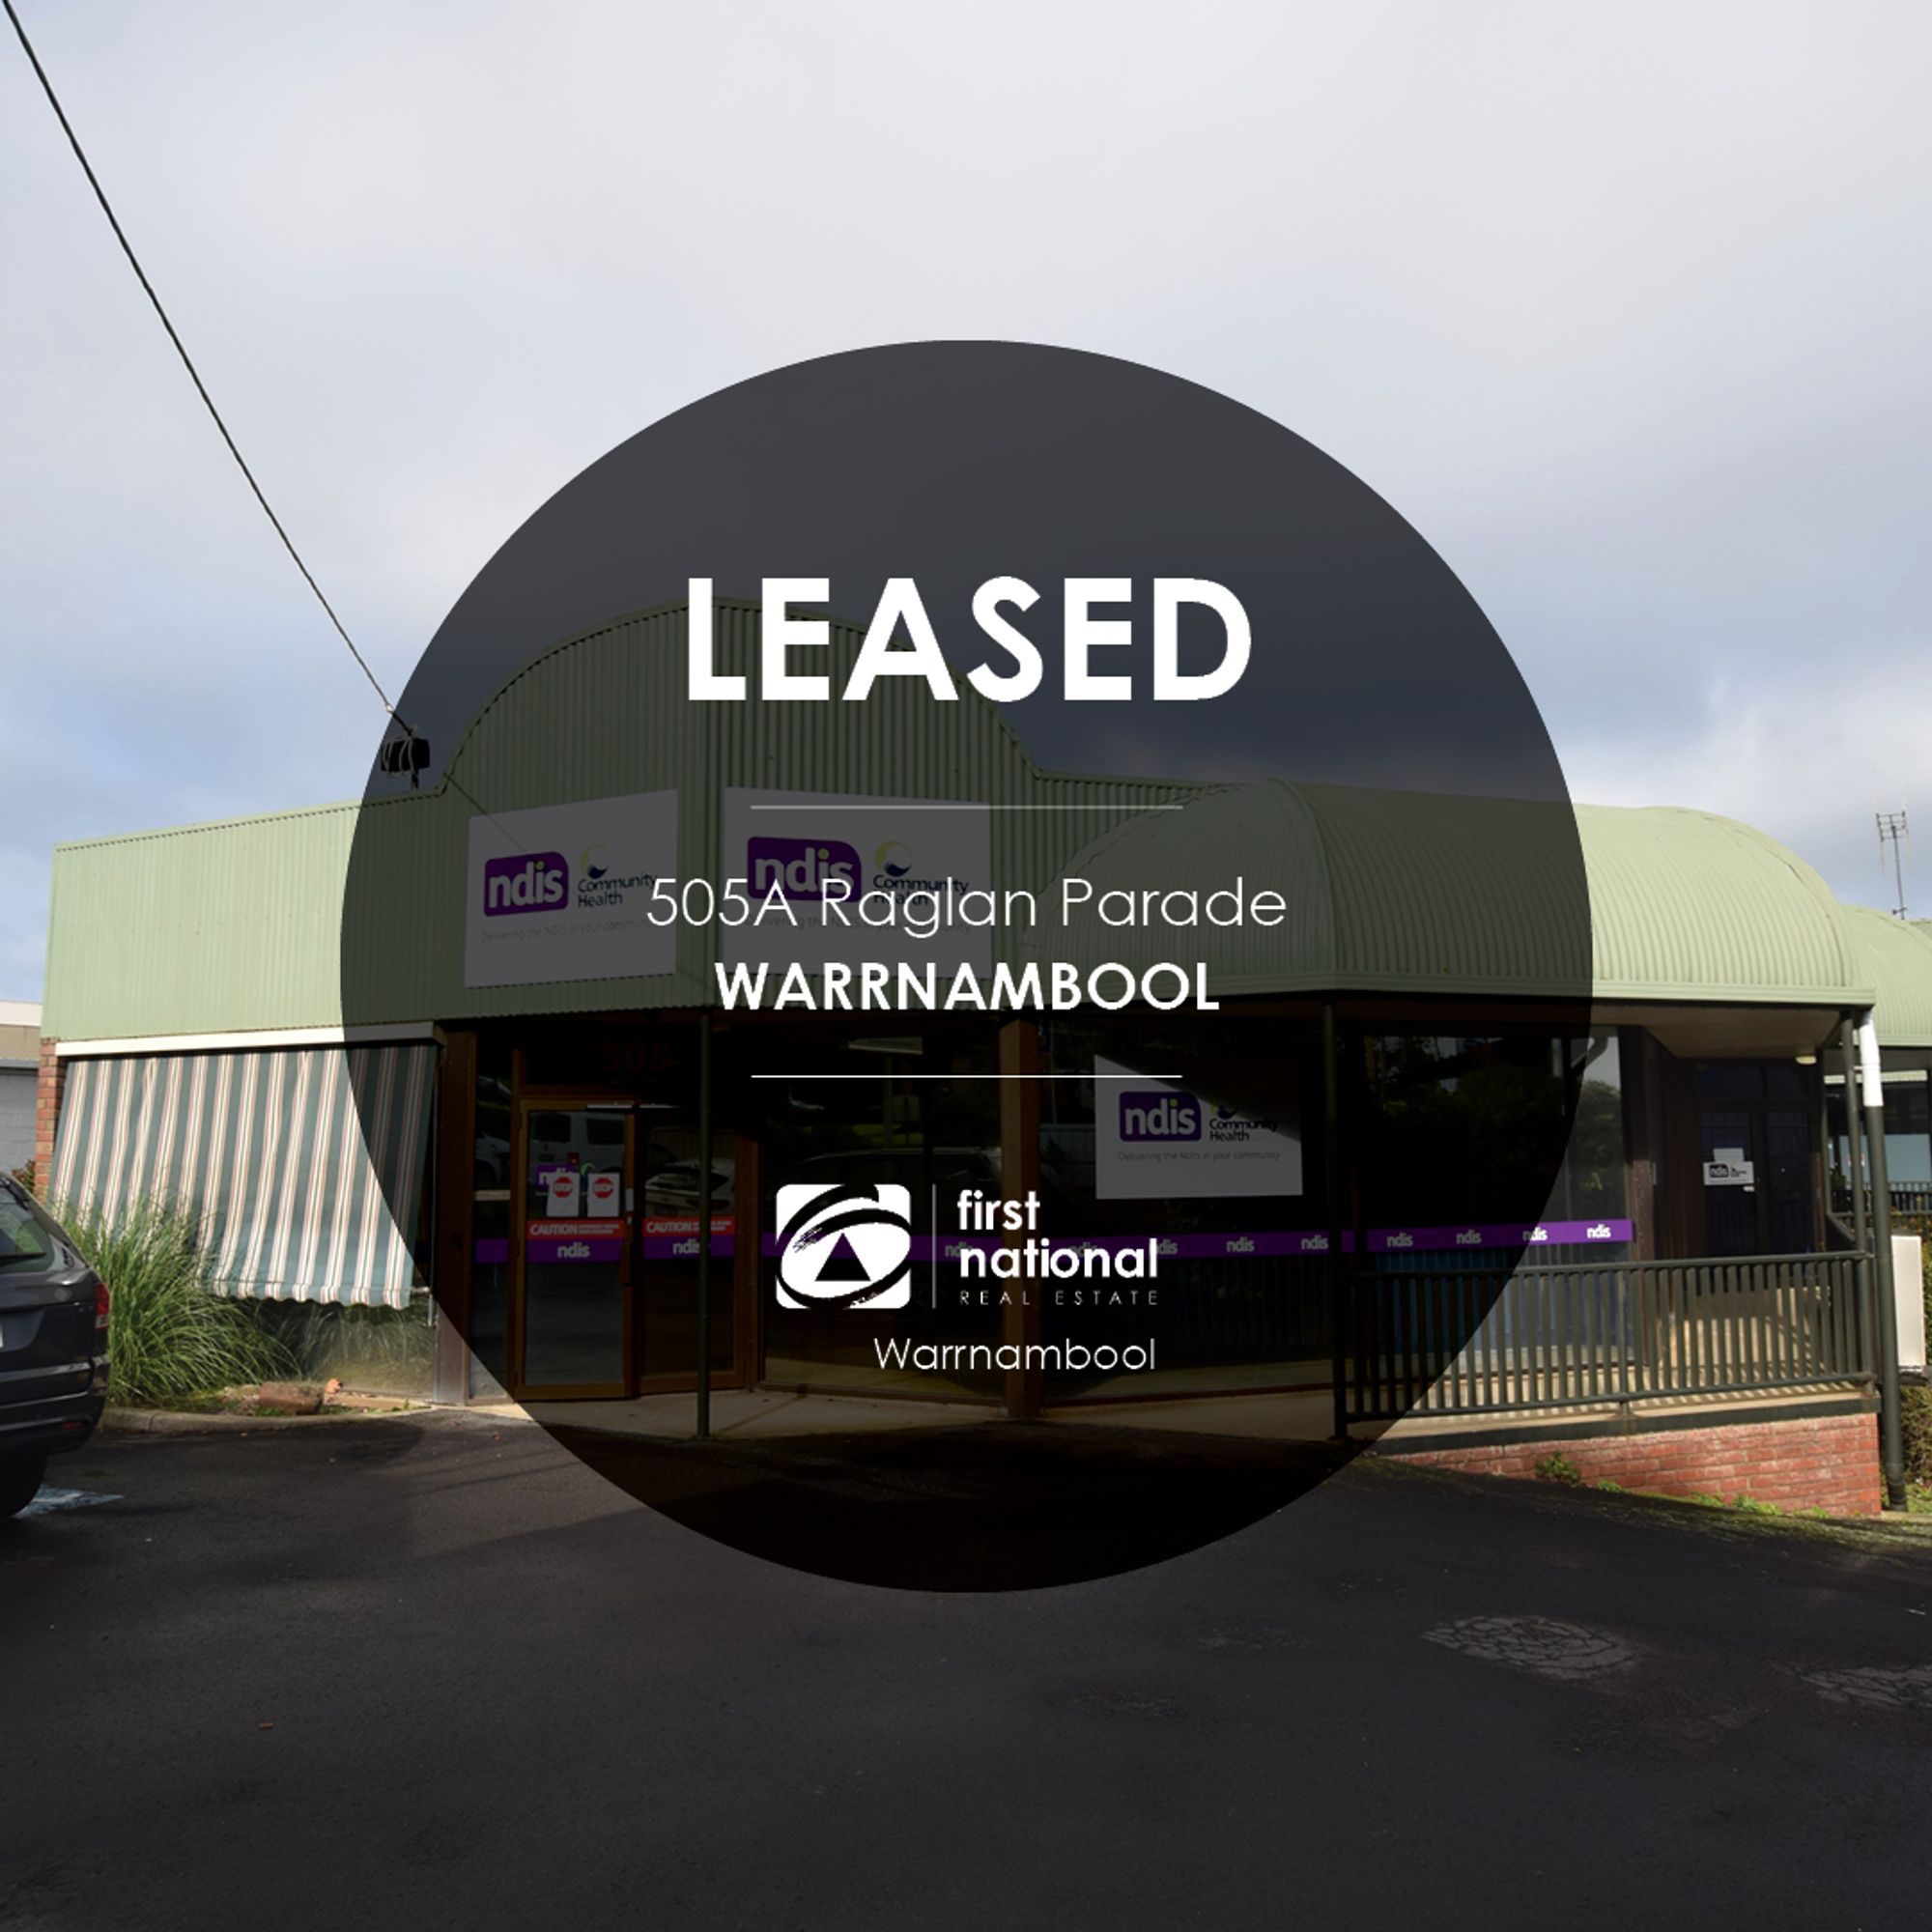 1/505 Raglan Parade, Warrnambool, VIC 3280